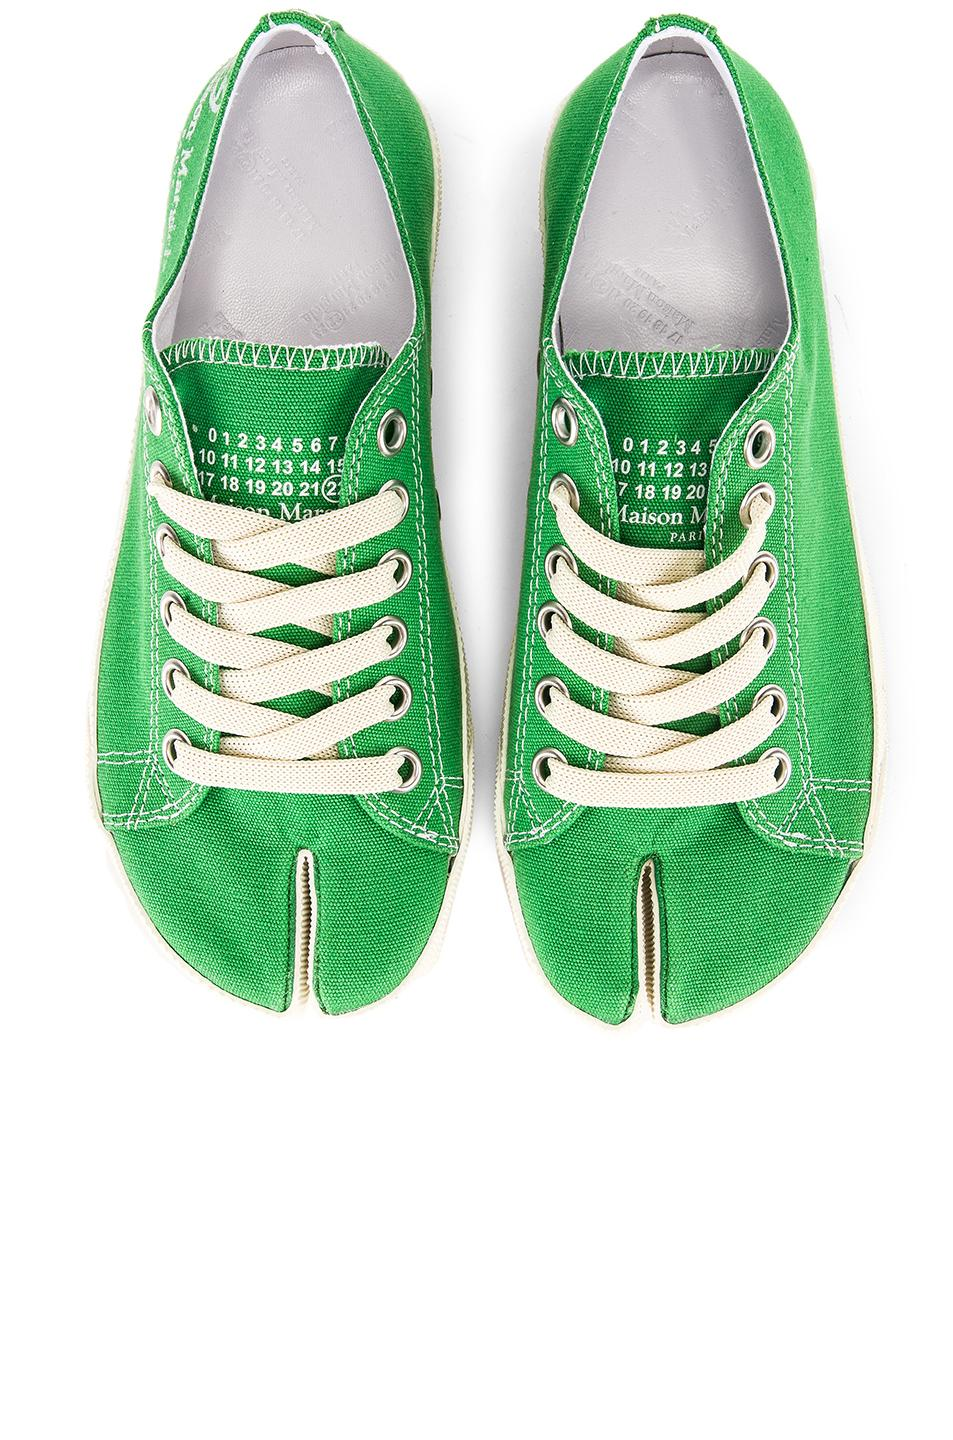 0fa7316d3847 Maison Margiela Low Top Canvas Sneakers in Green - Lyst